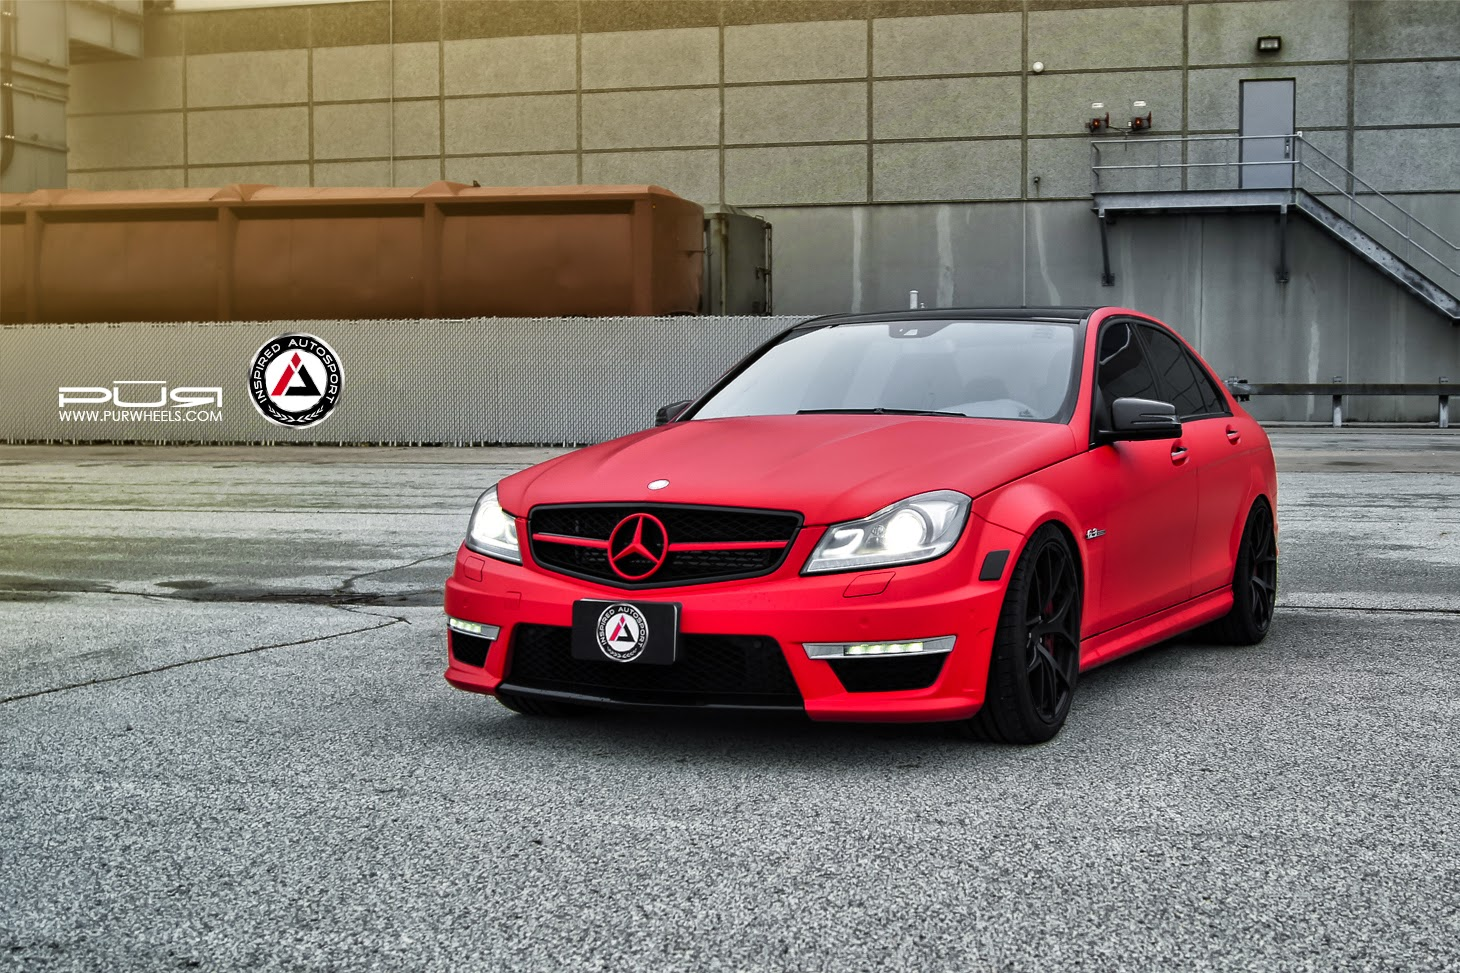 Mercedes benz w204 c63 amg red matte benztuning for Matte mercedes benz